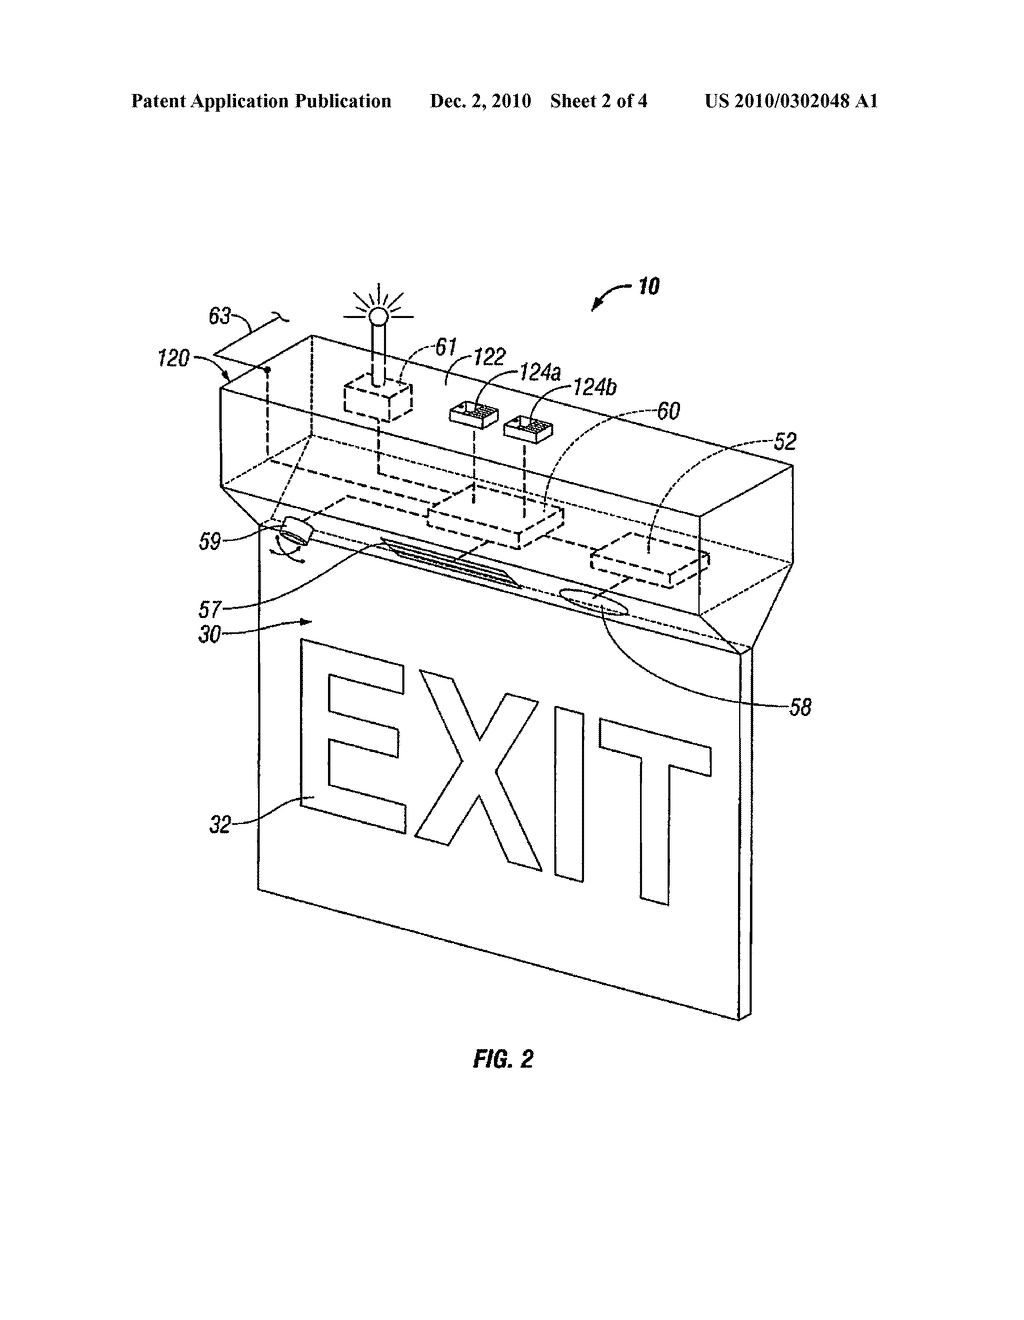 hight resolution of exit sign schematic wiring diagram todaysintelligent exit sign diagram schematic and image 03 exit